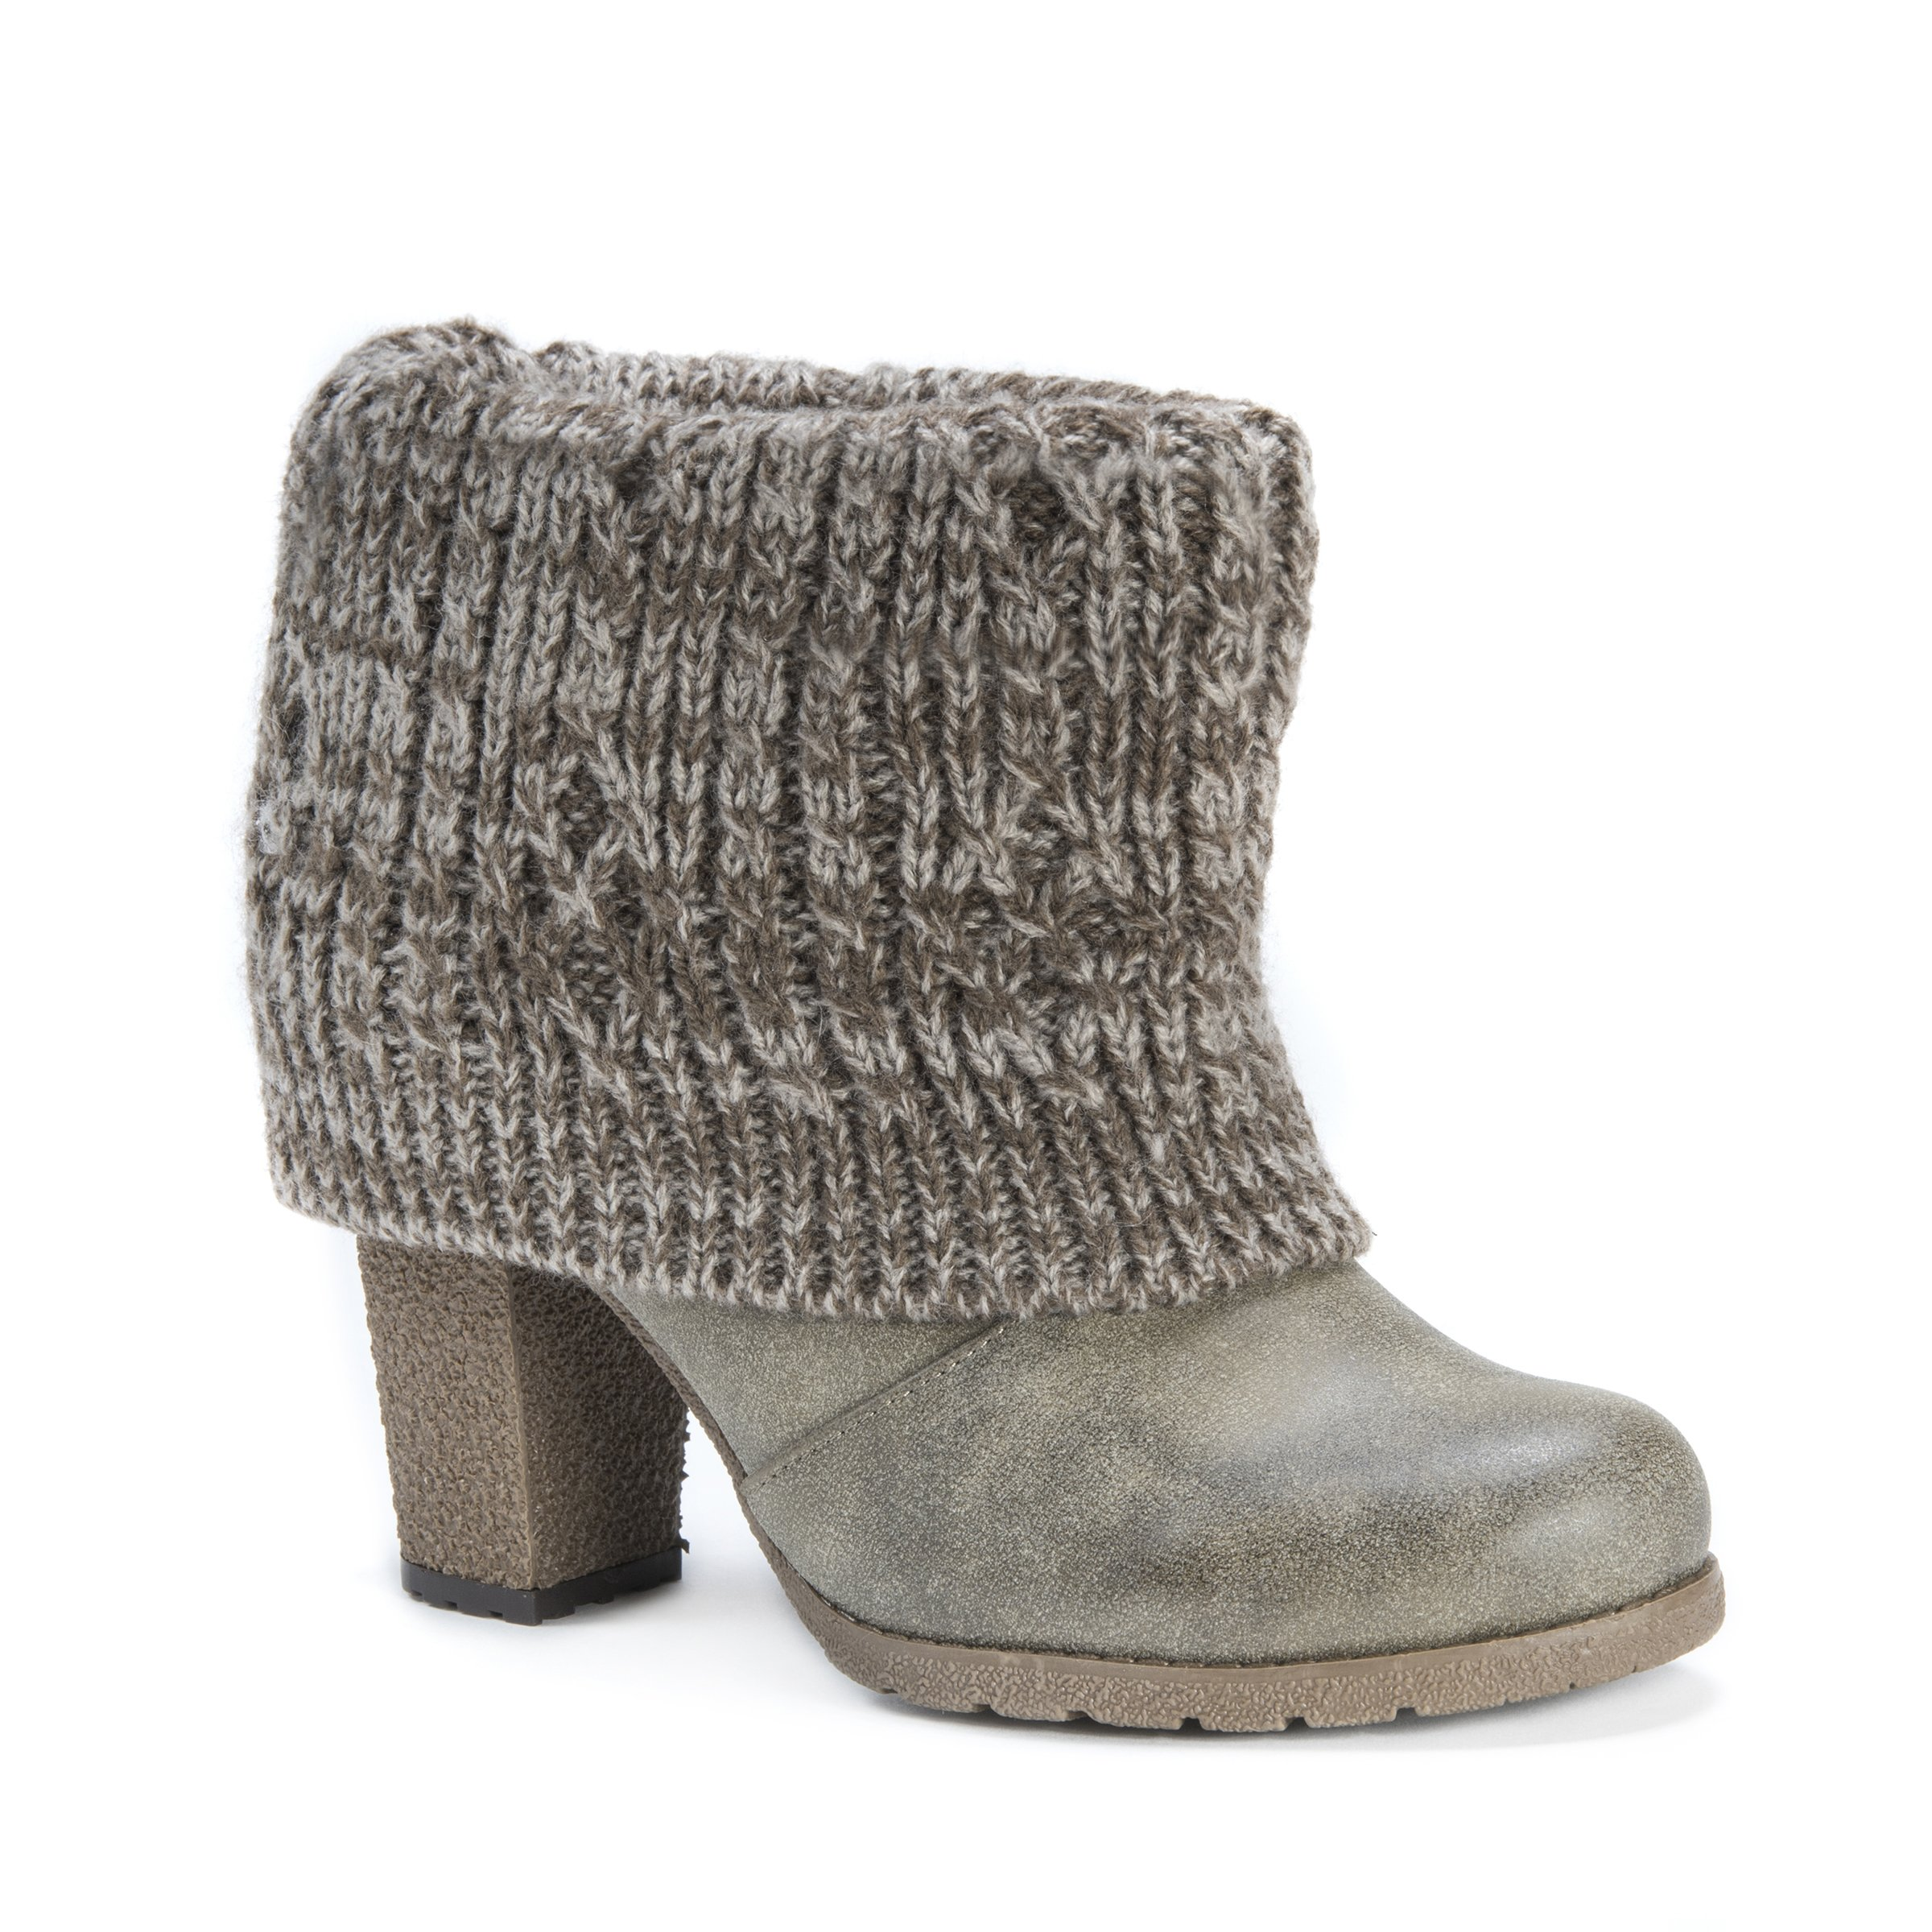 MUK LUKS Women's Chris Boot Ankle Bootie, Moccasin, 9 M US